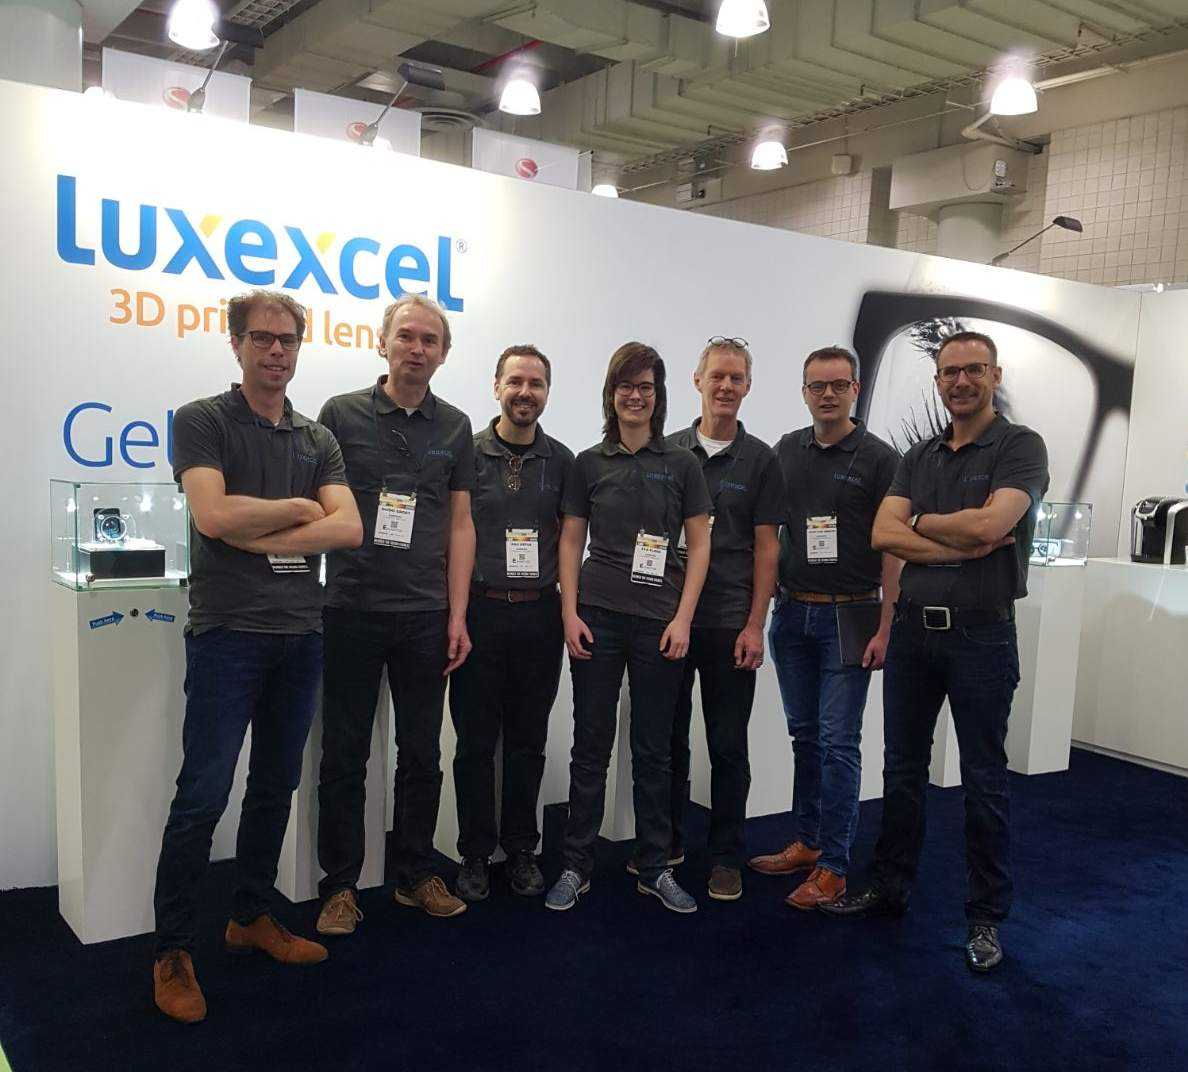 The Luxexcel team at Vision Expo, New York. Photo by Marco de Visser on twitter.